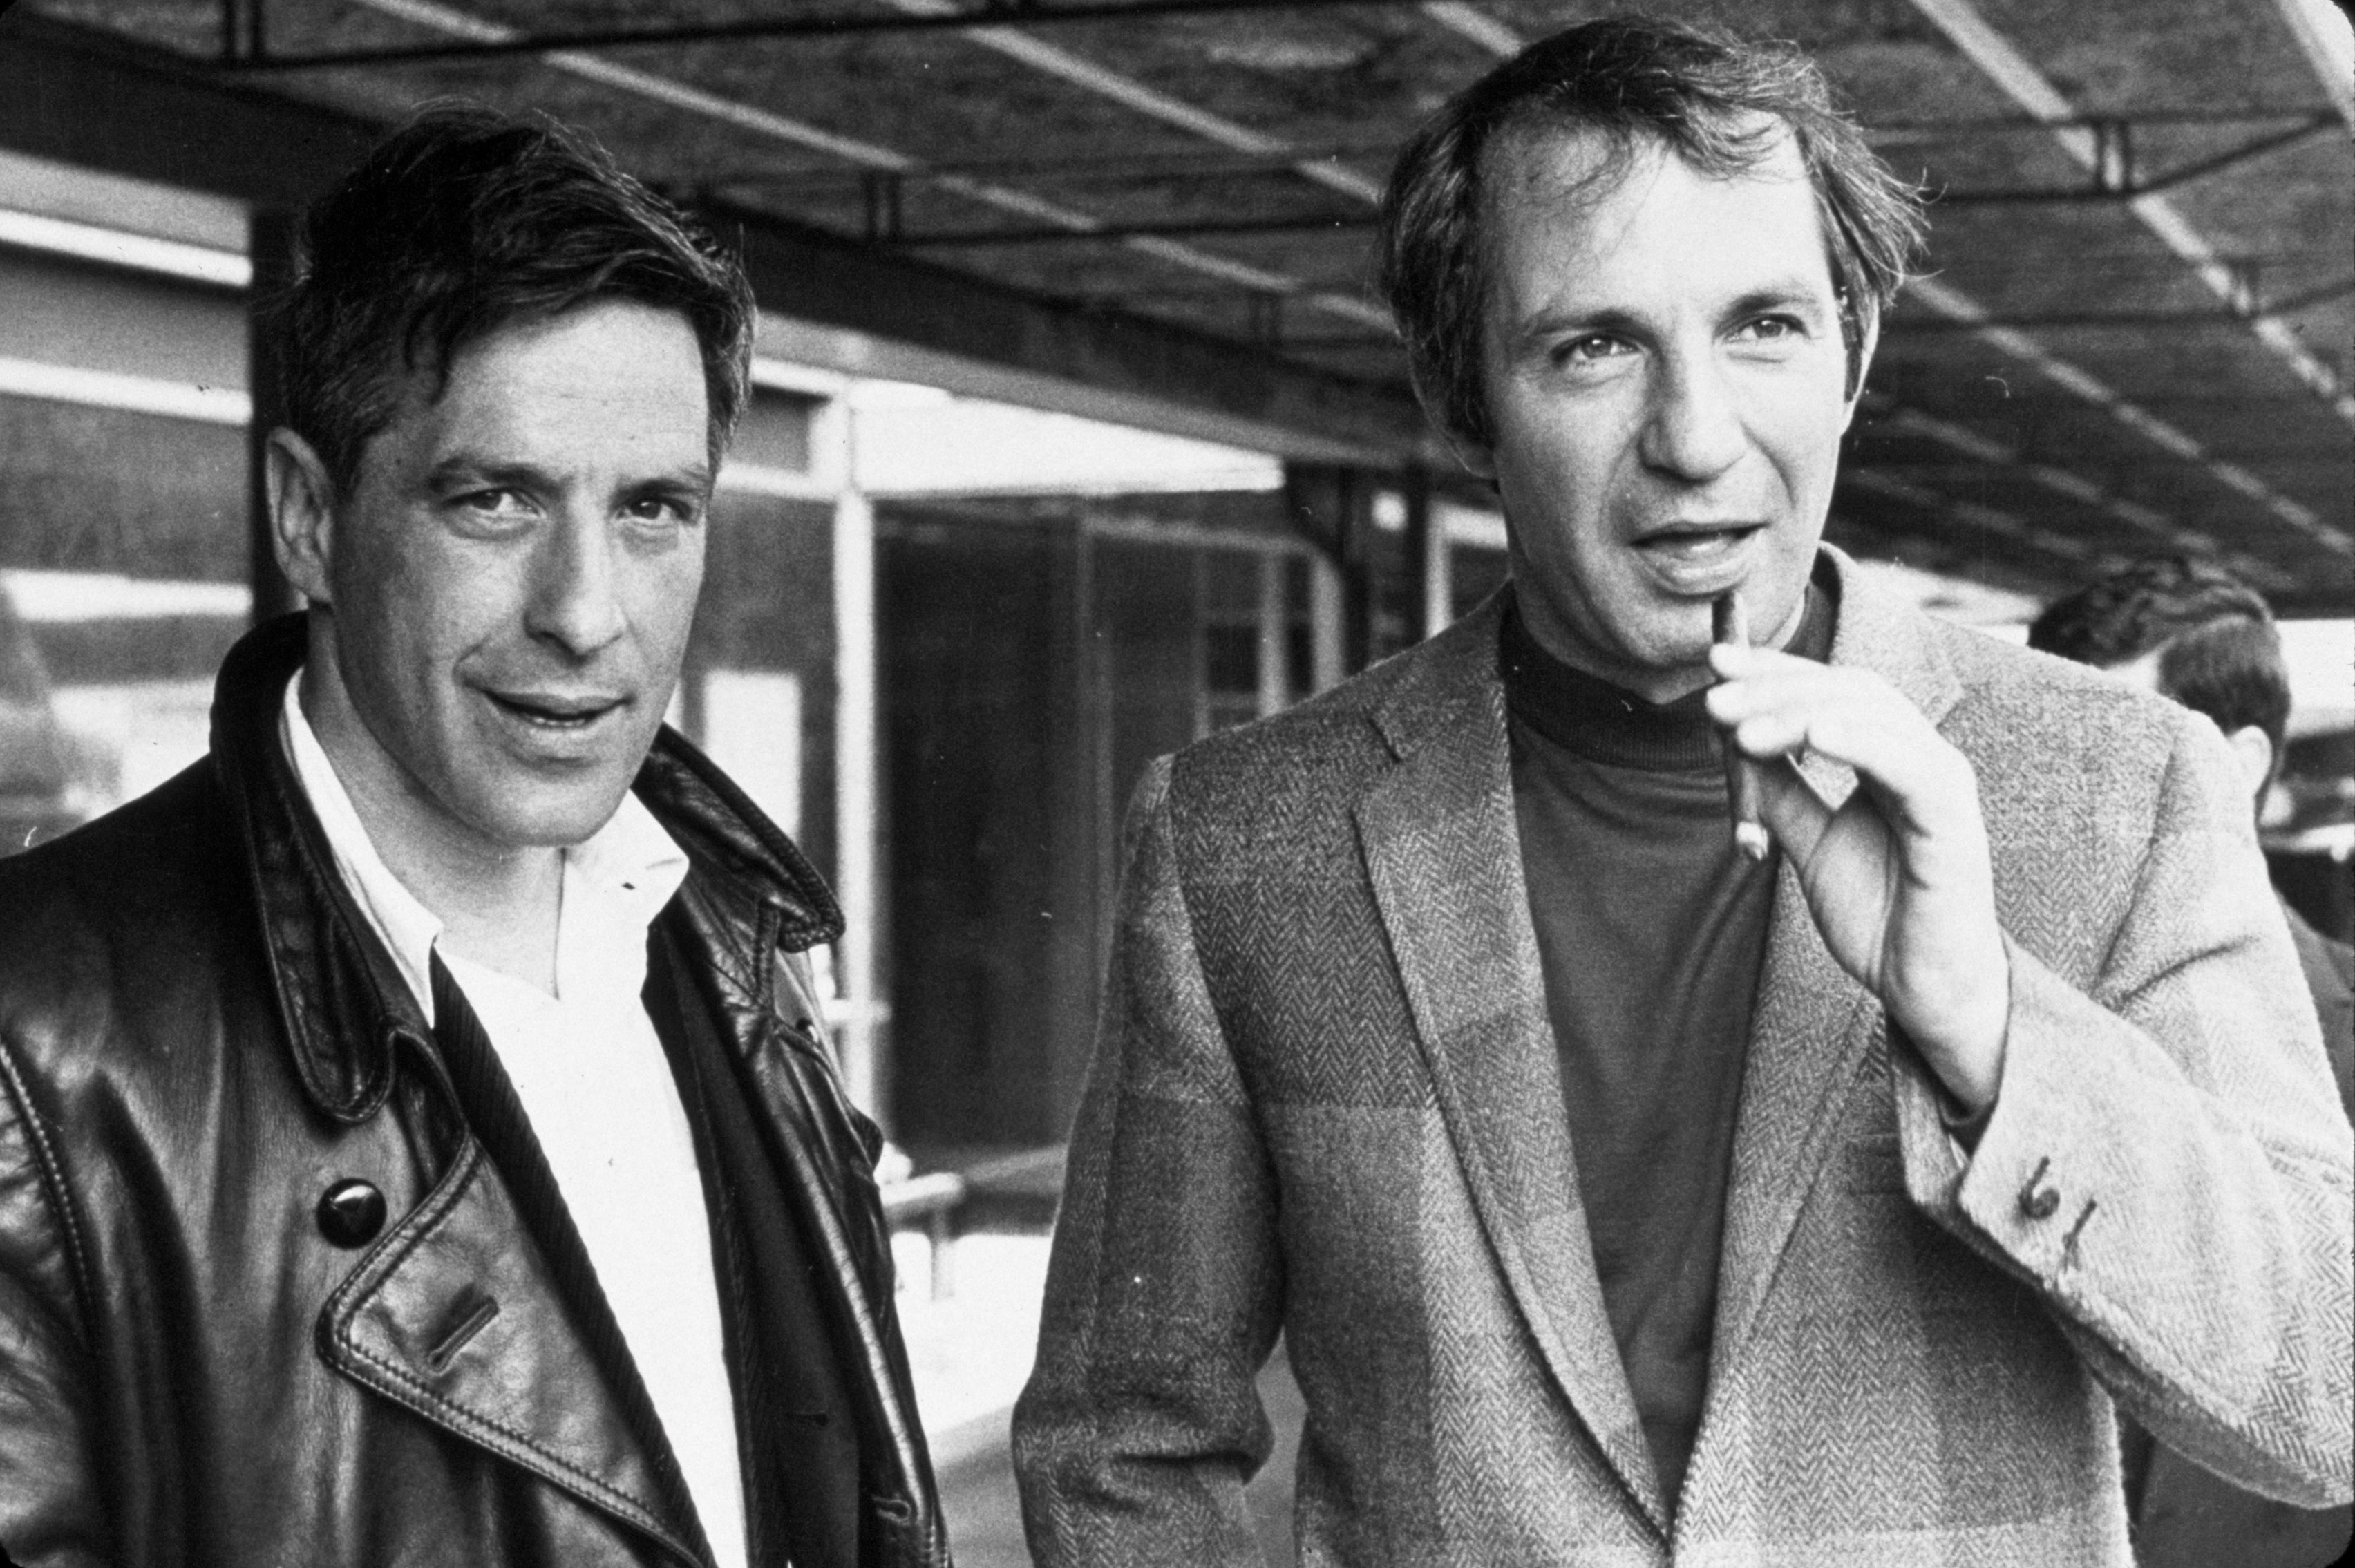 Editorial use onlyMandatory Credit: Photo by Snap/Shutterstock (390904nd) FILM STILLS OF 'HUSBANDS' WITH 1970, CASSAVETES, JOHN CASSAVETES, BEN GAZZARA IN 1970 VARIOUS